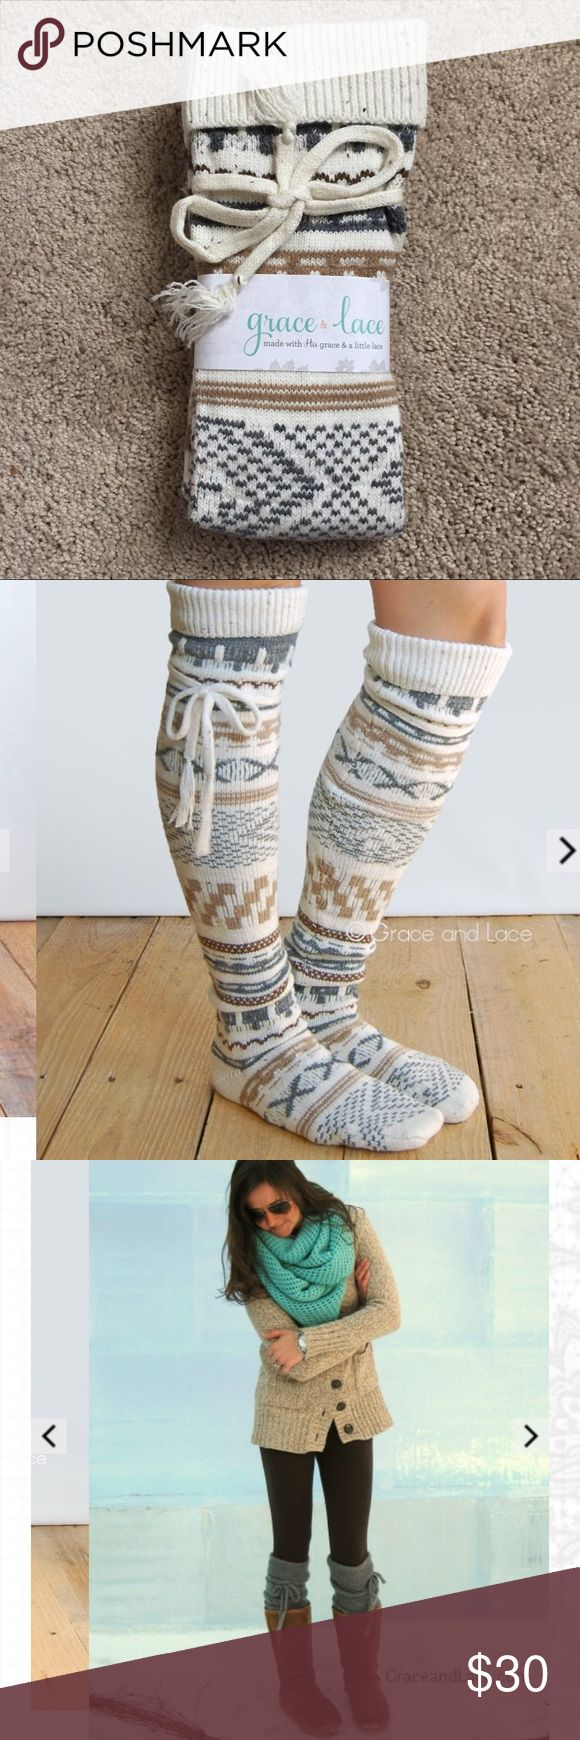 """❤VDAY SALE❤ Grace & Lace Alpine Boot Socks Beautiful and thick textured knit thigh high/ above the knee (depending on your height!) socks are super cute, warm, and cozy! Great for a ski trip with winter boots or, let's be honest, wearing around the house! In the sold out cream, brown and gray intarsia print by Grace & Lace. One size fits most (6, 7, 8, 9, 10, 11 women's sizes). 26"""" tall from heel to top of cuff. Cuff can be folded! 1st and 3rd photos are pulled from the Grace & Lace website…"""